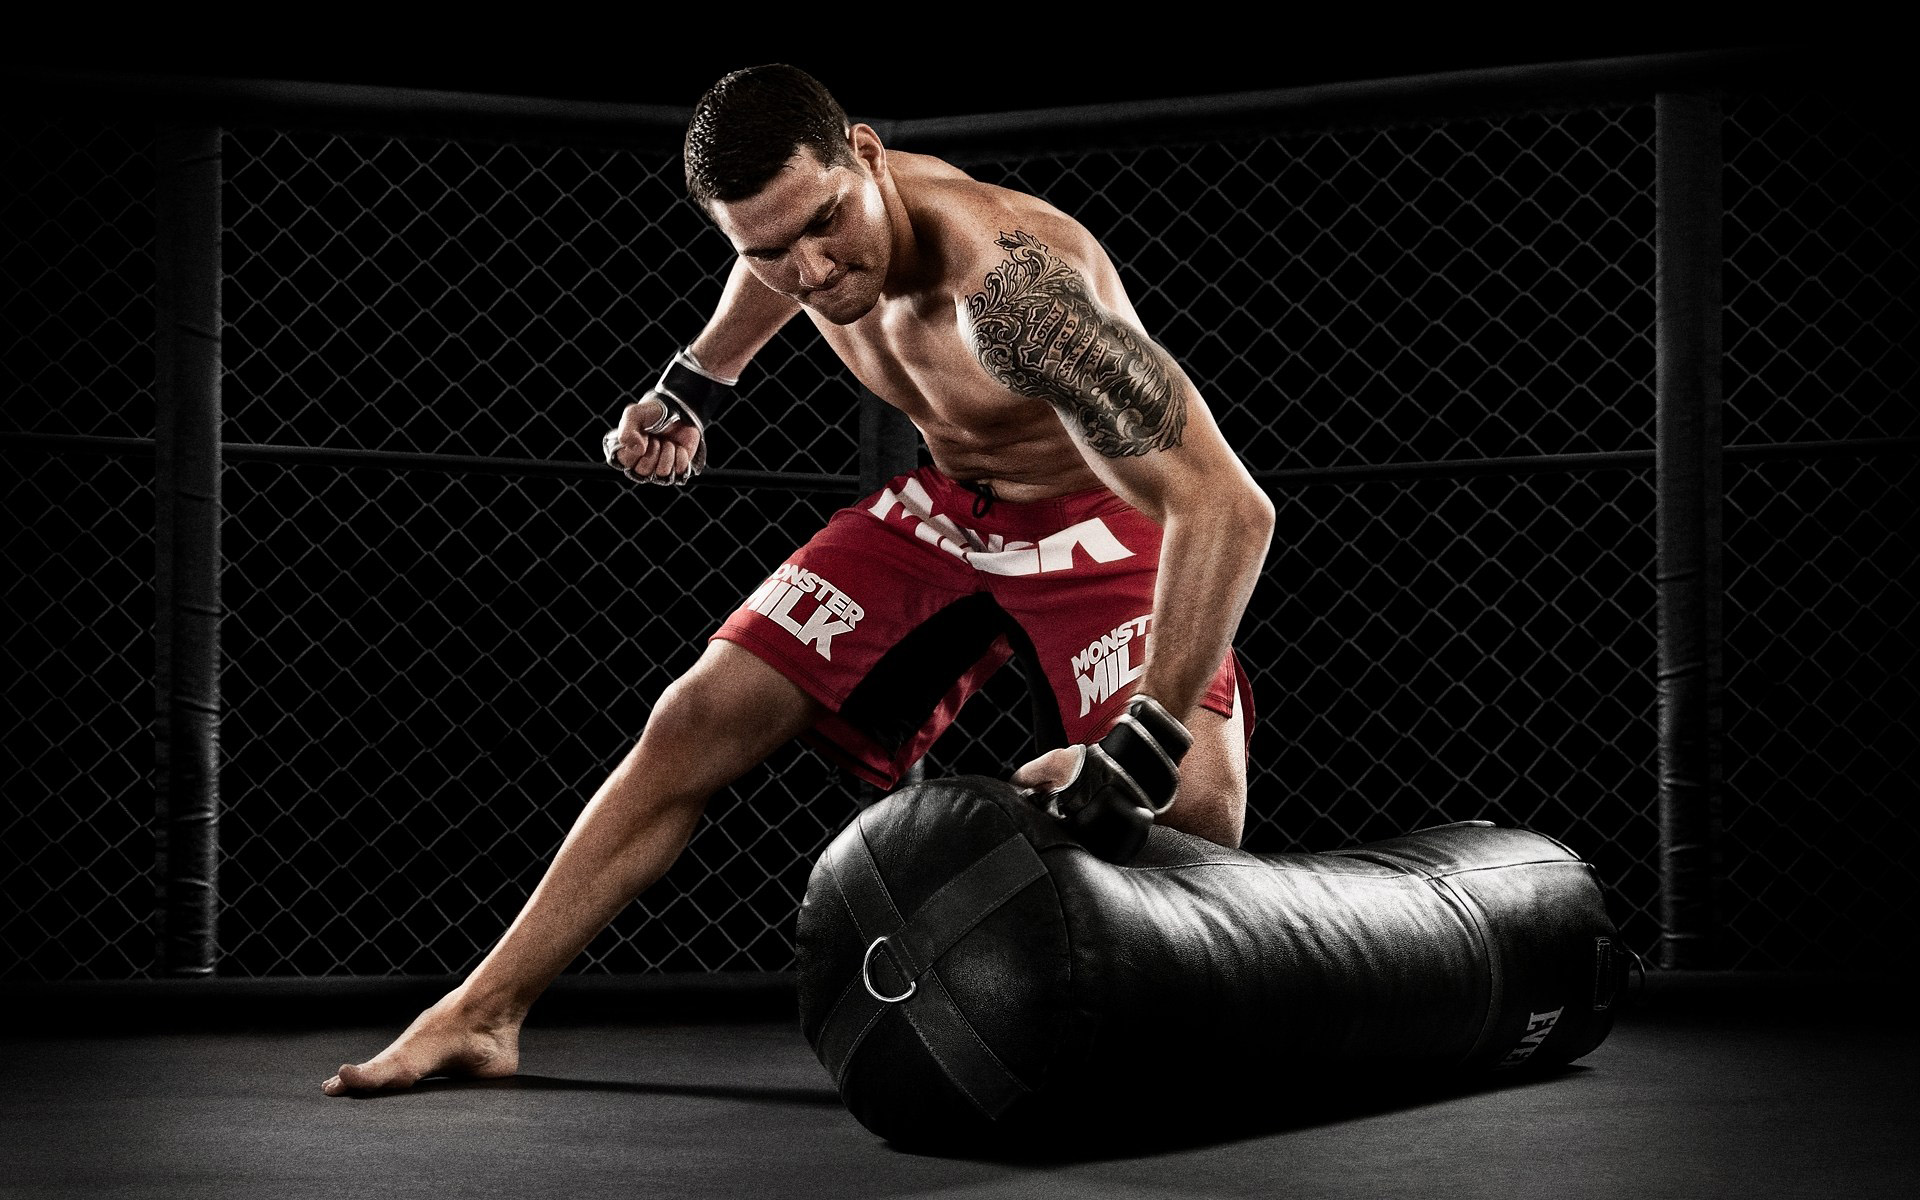 Chris Weidman photographer Blair Bunting